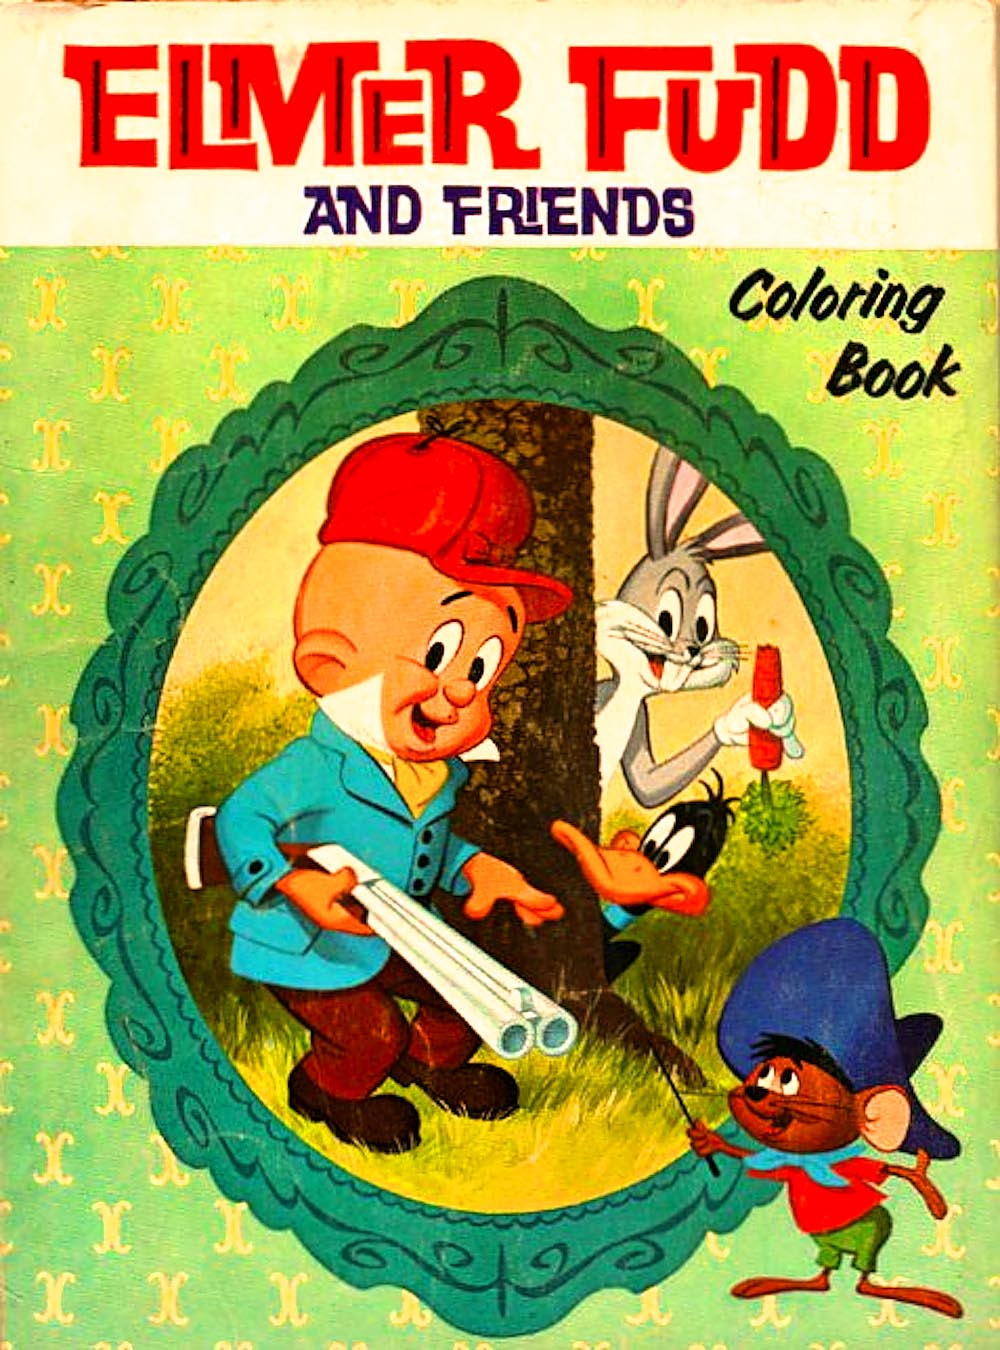 Inbetweens Coloring Book Covers Animationresources Org